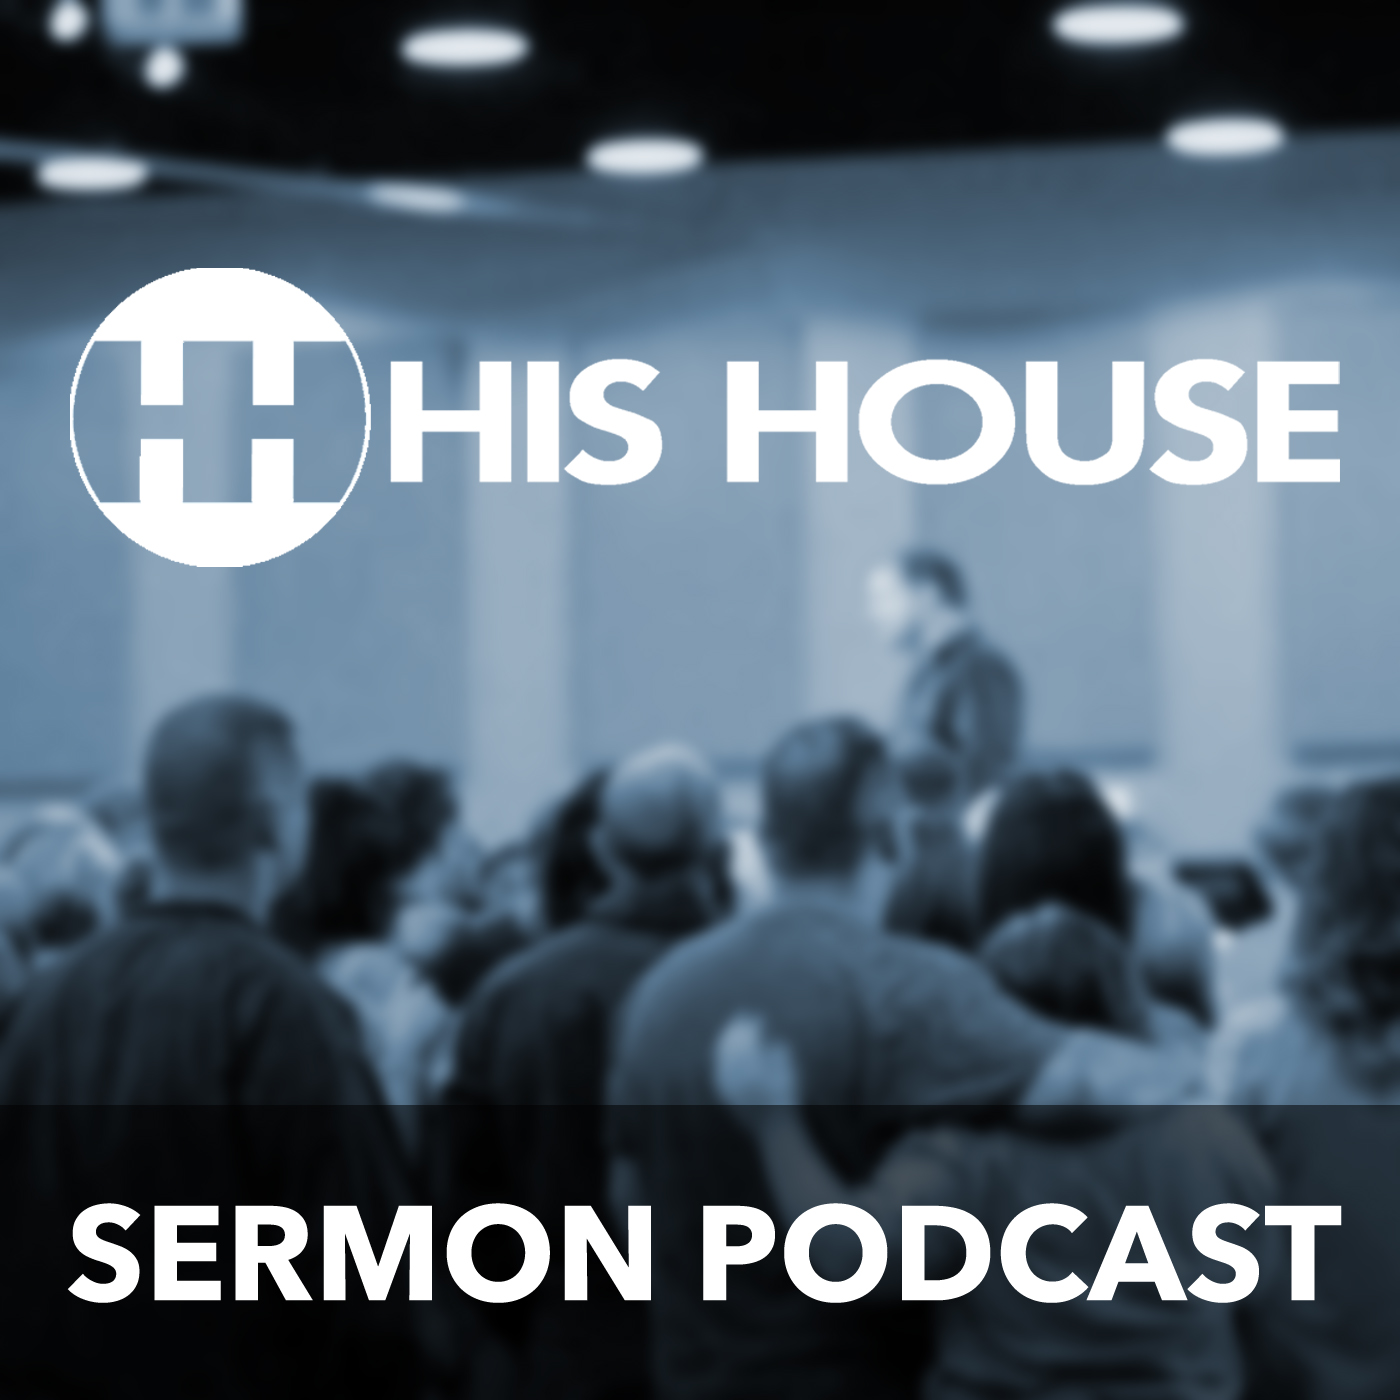 His House Sermon Podcast